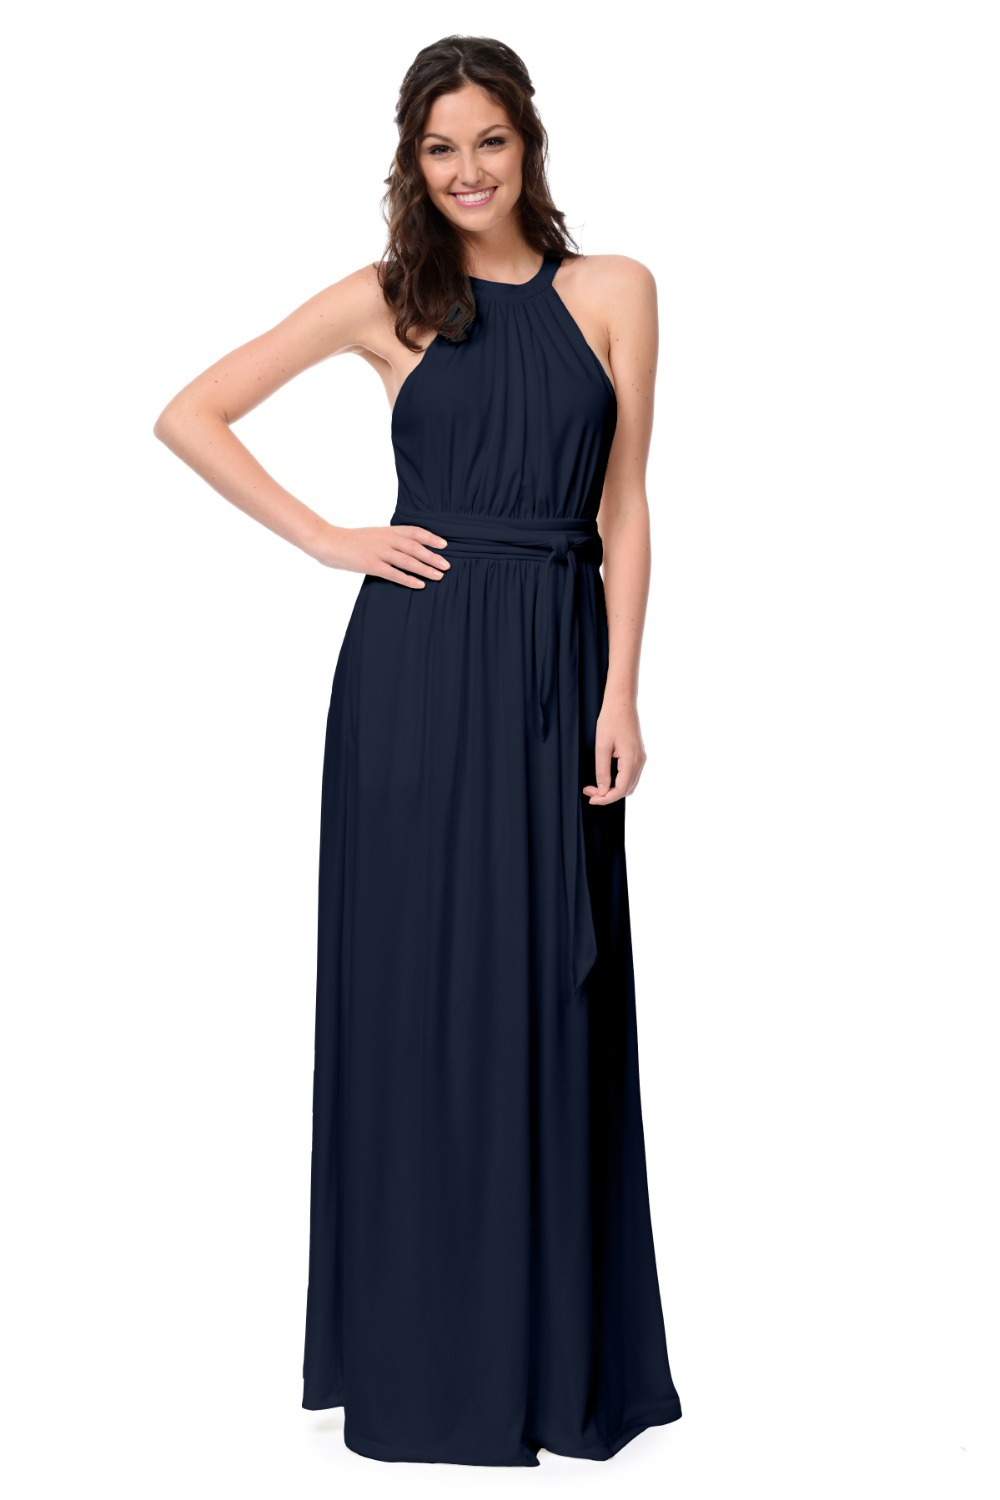 Compare Prices on Navy Blue Short Dress- Online Shopping/Buy Low ...